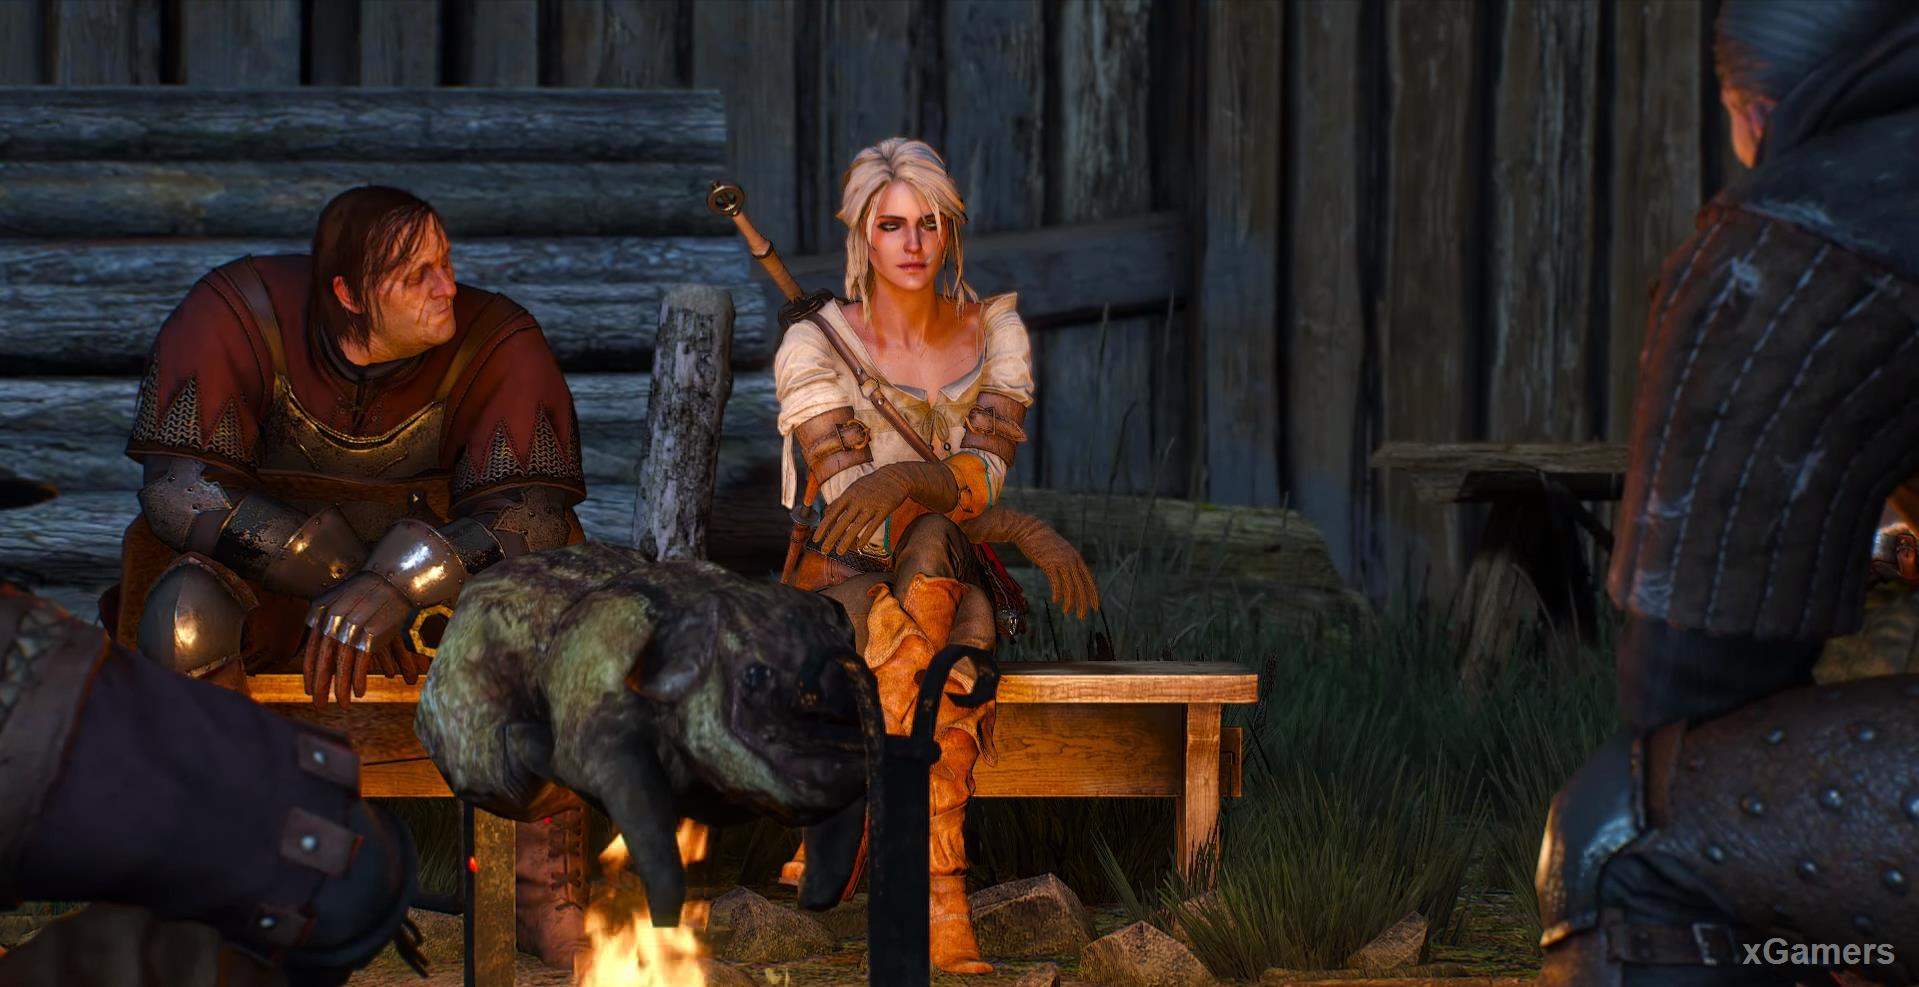 Starting a new quest - Ciri s Story: The Race